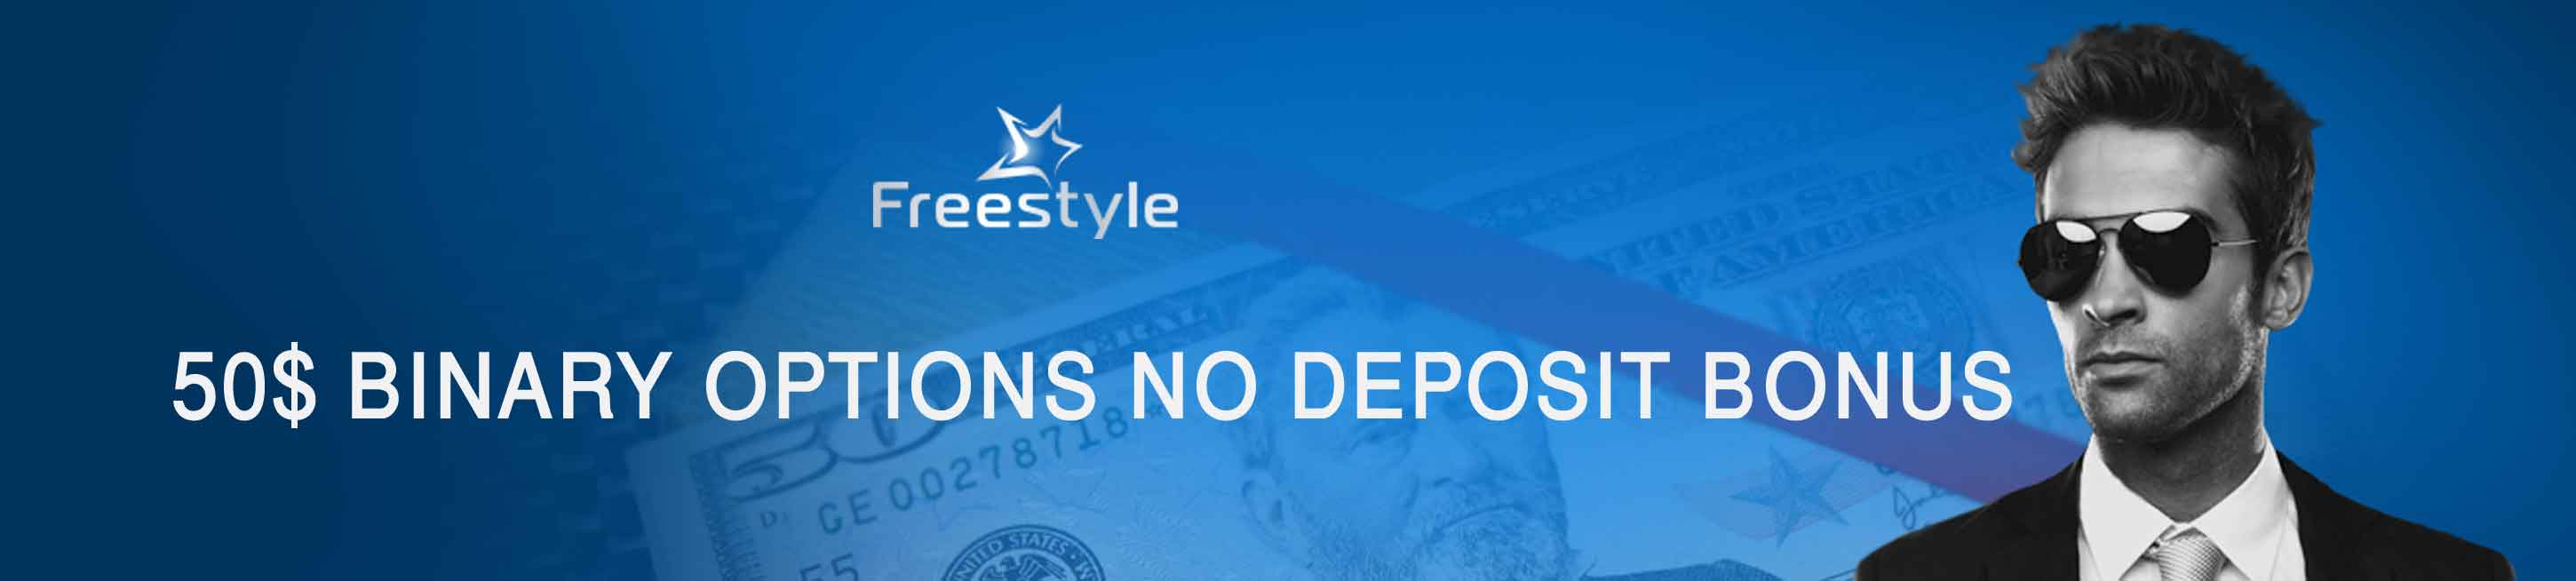 No deposit binary options bonuses